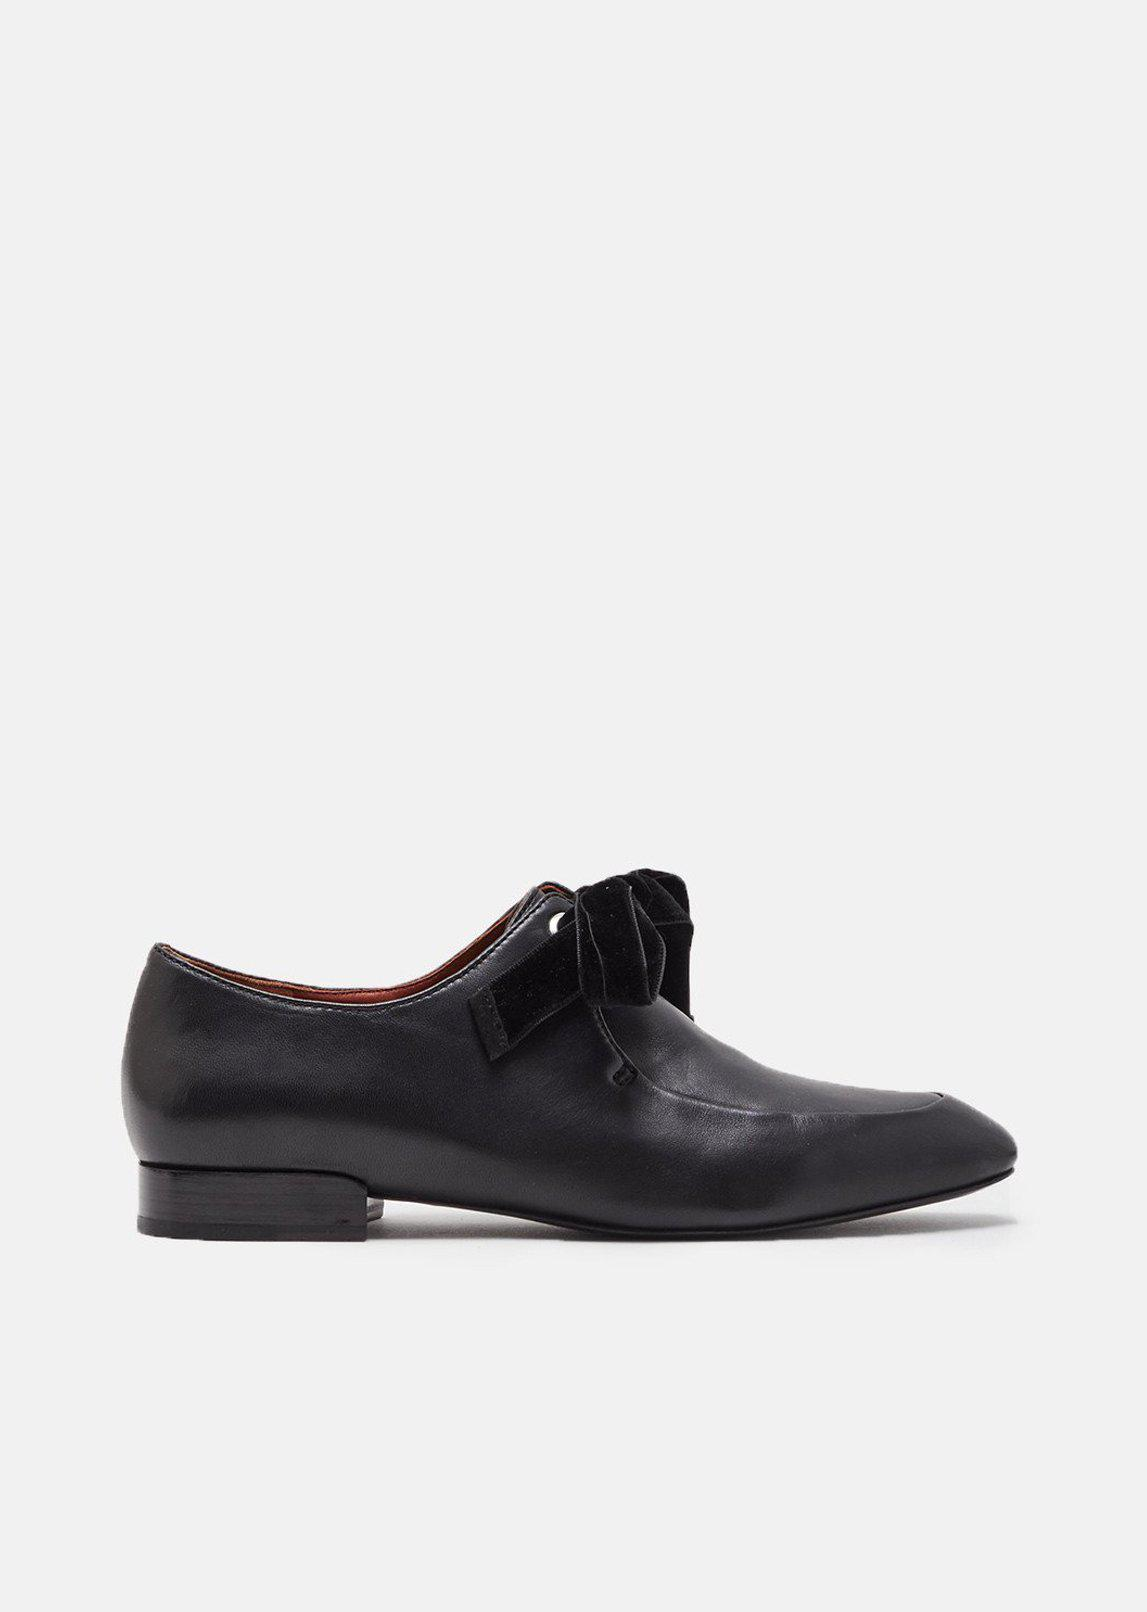 3.1 Phillip Lim Lace Up Shoes With Sqaure Cap Toe Cheap Sale Perfect B8AsCGGUuB